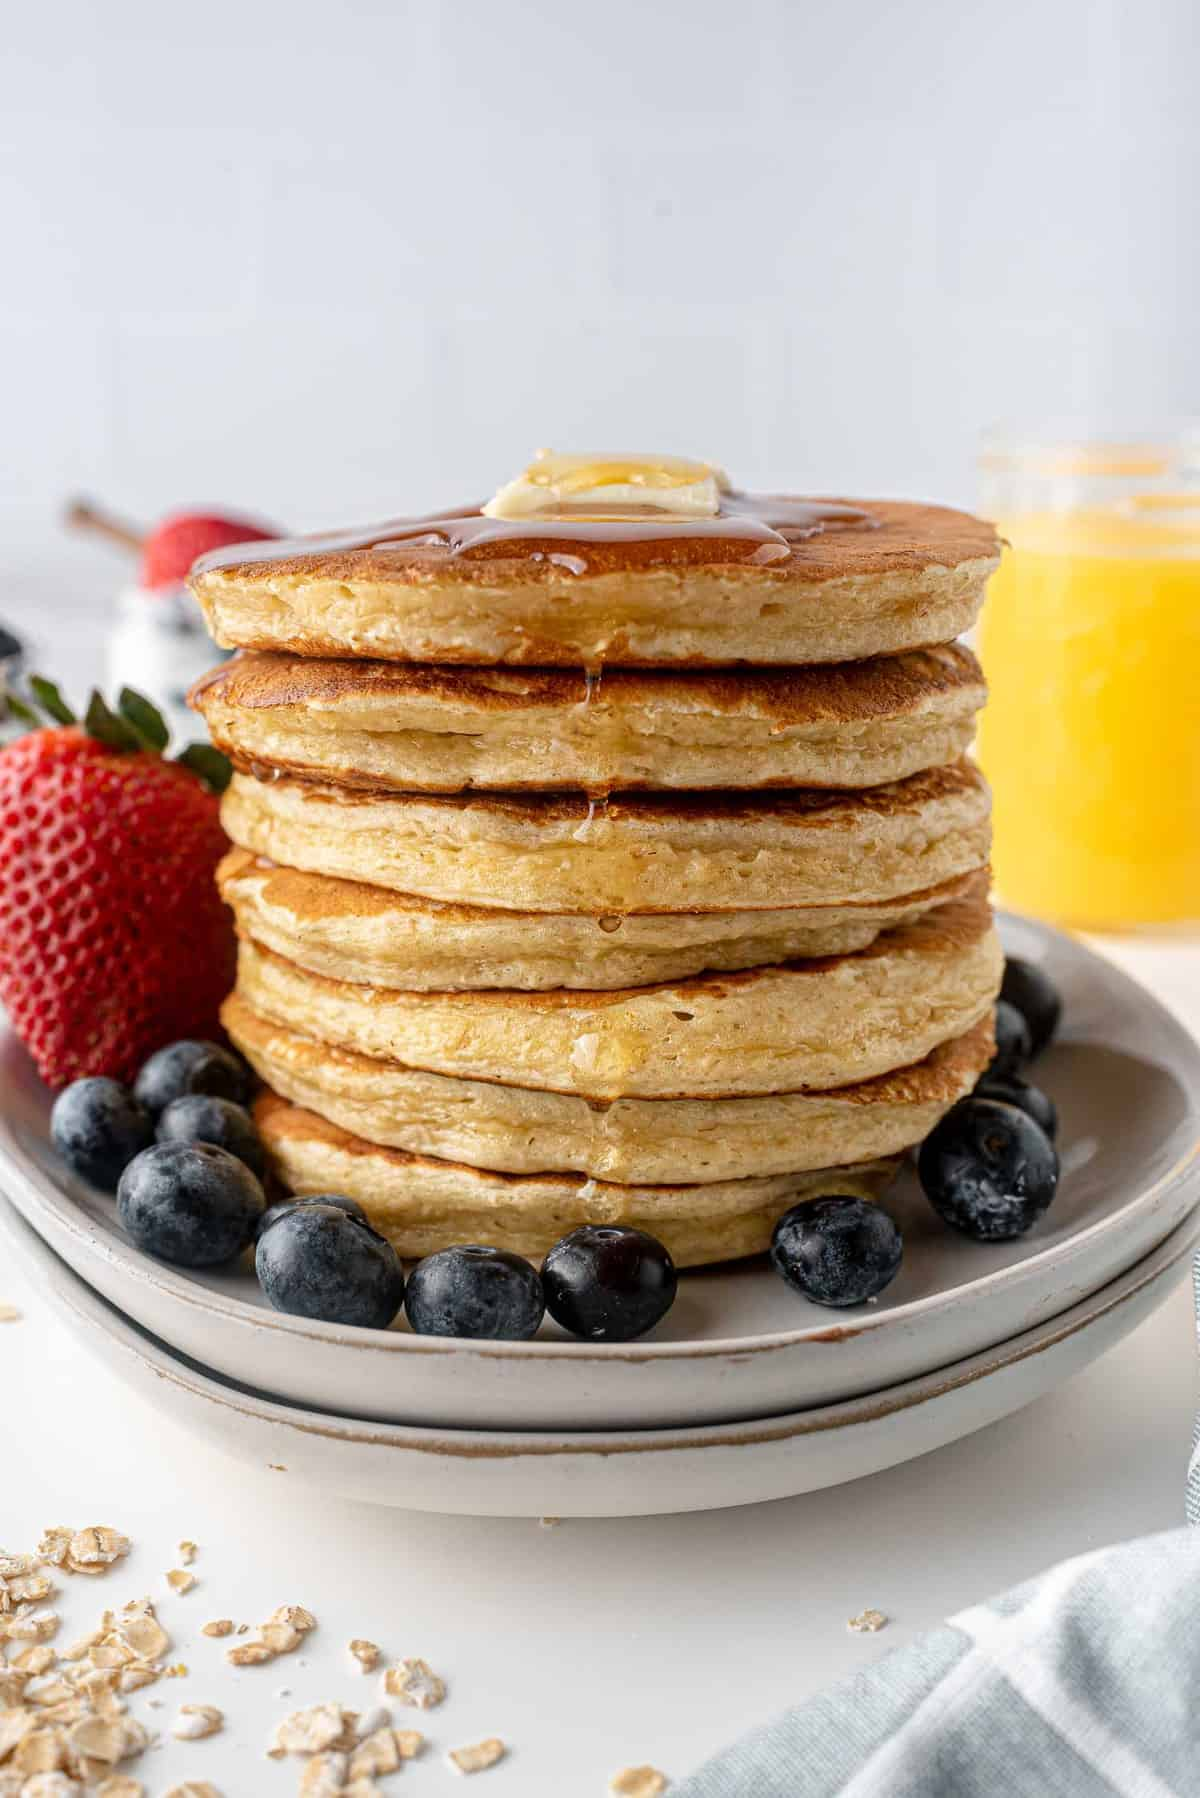 Tall stack of pancakes, surrounded by fresh fruit, dripping with maple syrup.